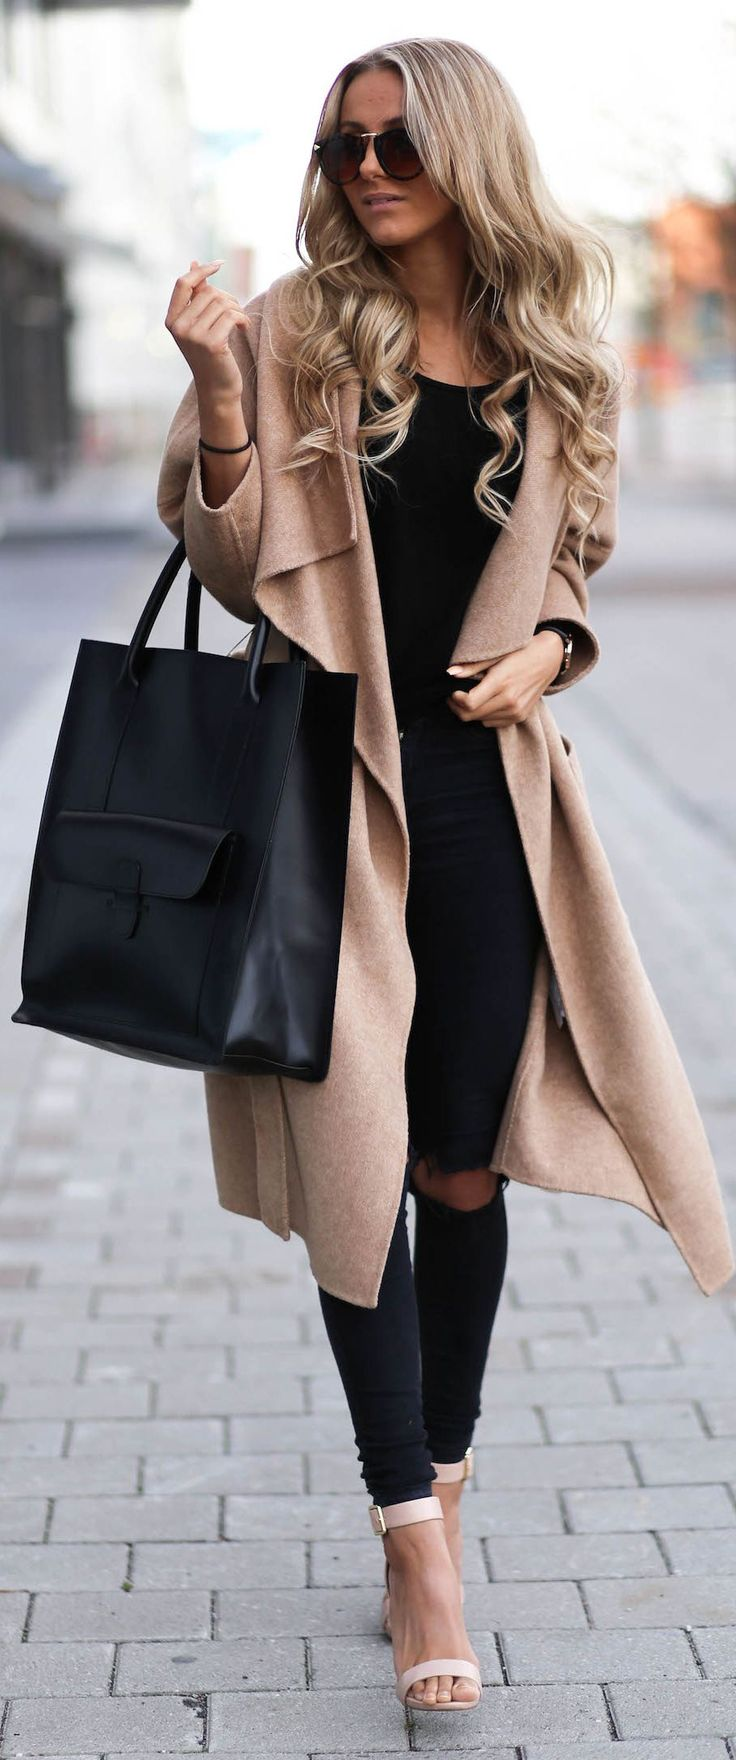 Street style black outfit and camel coat.